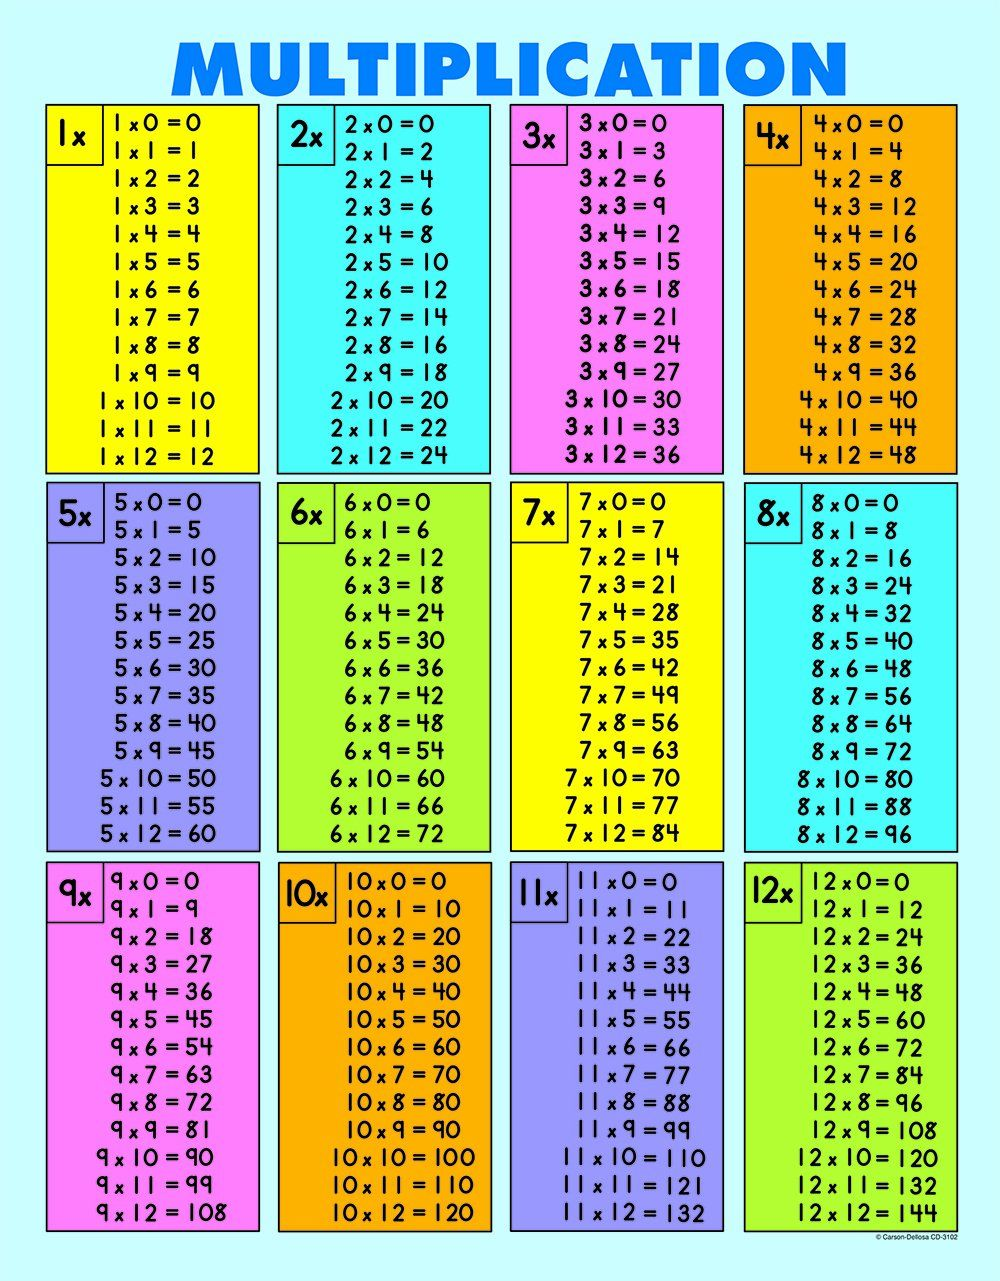 Multiplication Facts Chart Yahoo Image Search Results Multiplication Chart Multiplication Table Multiplication